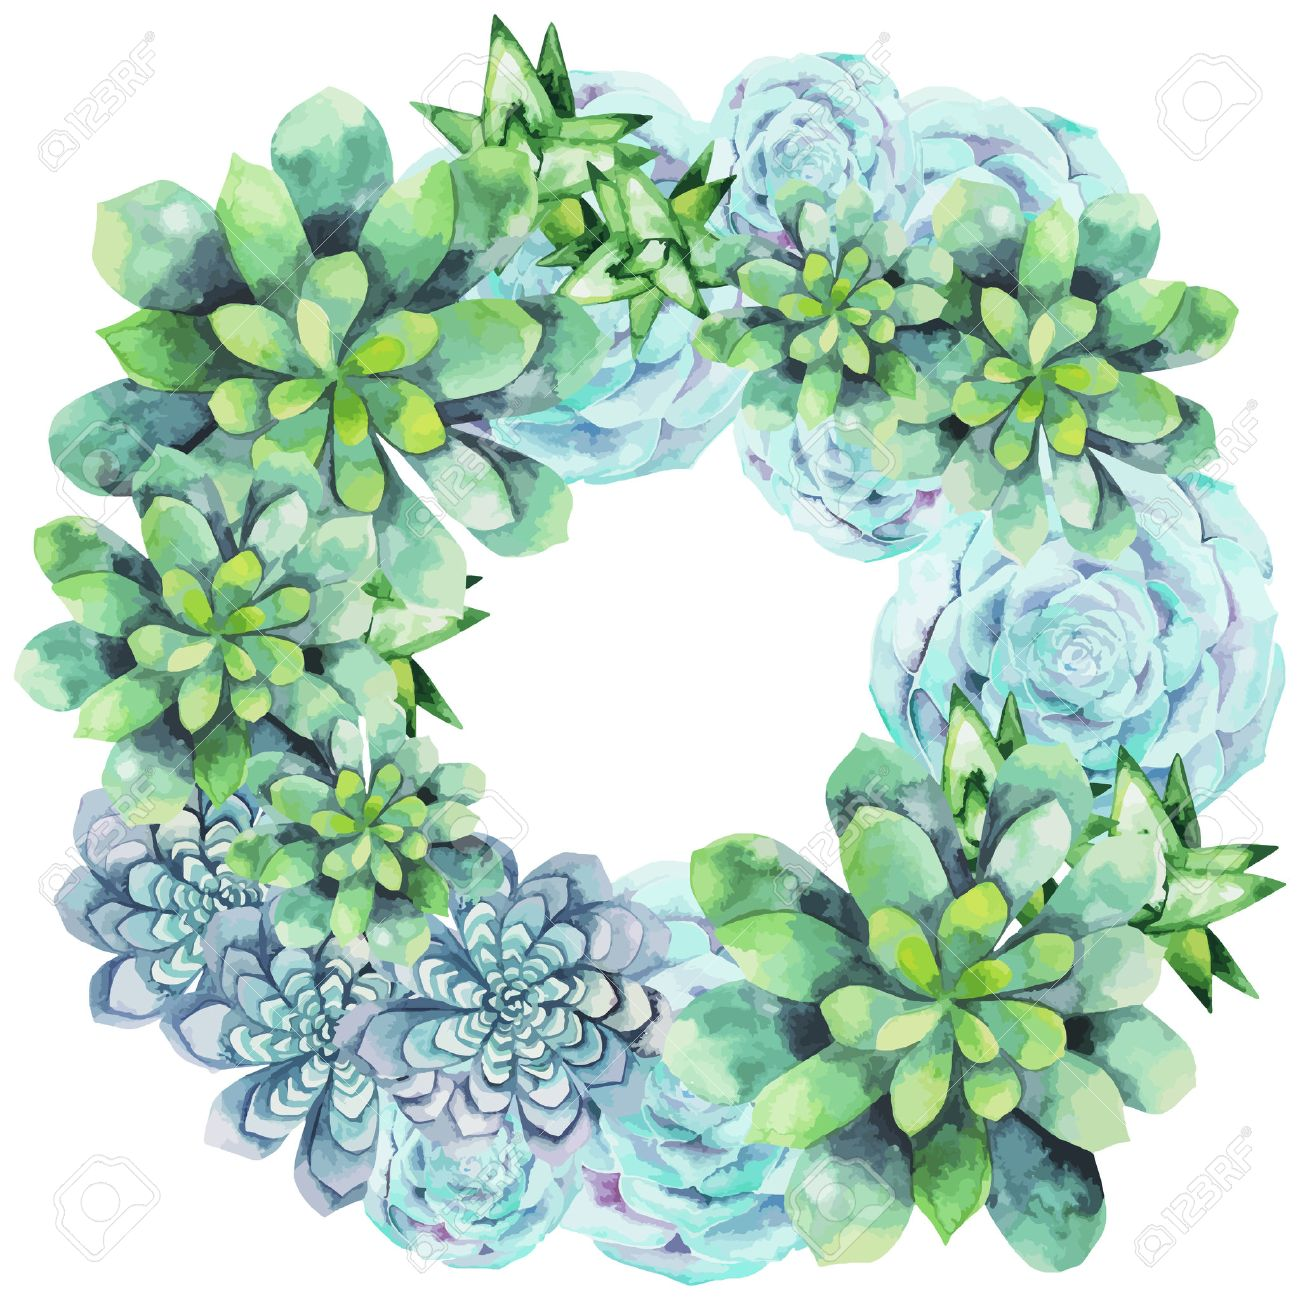 Watercolor Succulent Wreath Isolated On White Background Cute Royalty Free Cliparts Vectors And Stock Illustration Image 51484748